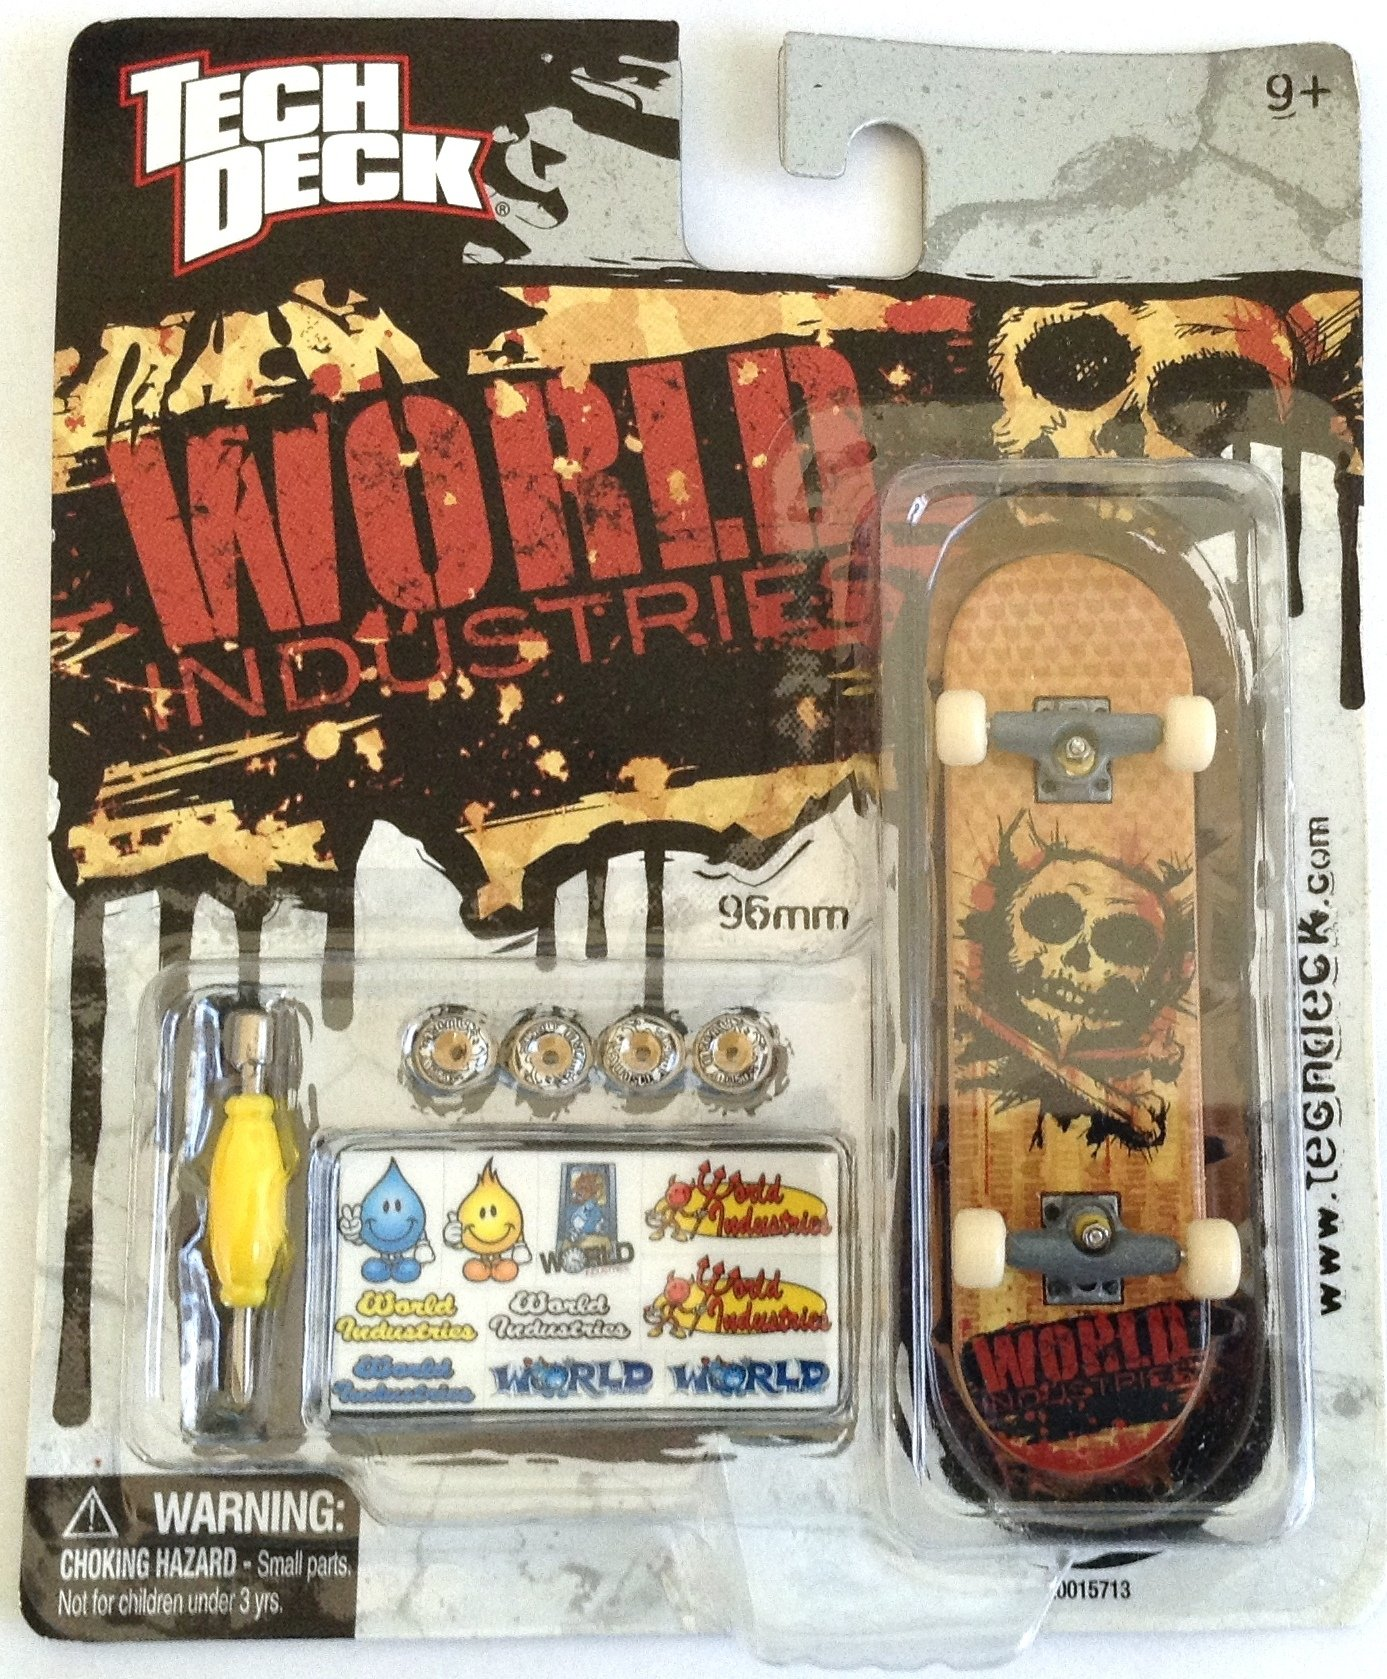 TECH DECK World Industries Crossbones by TECH DECK